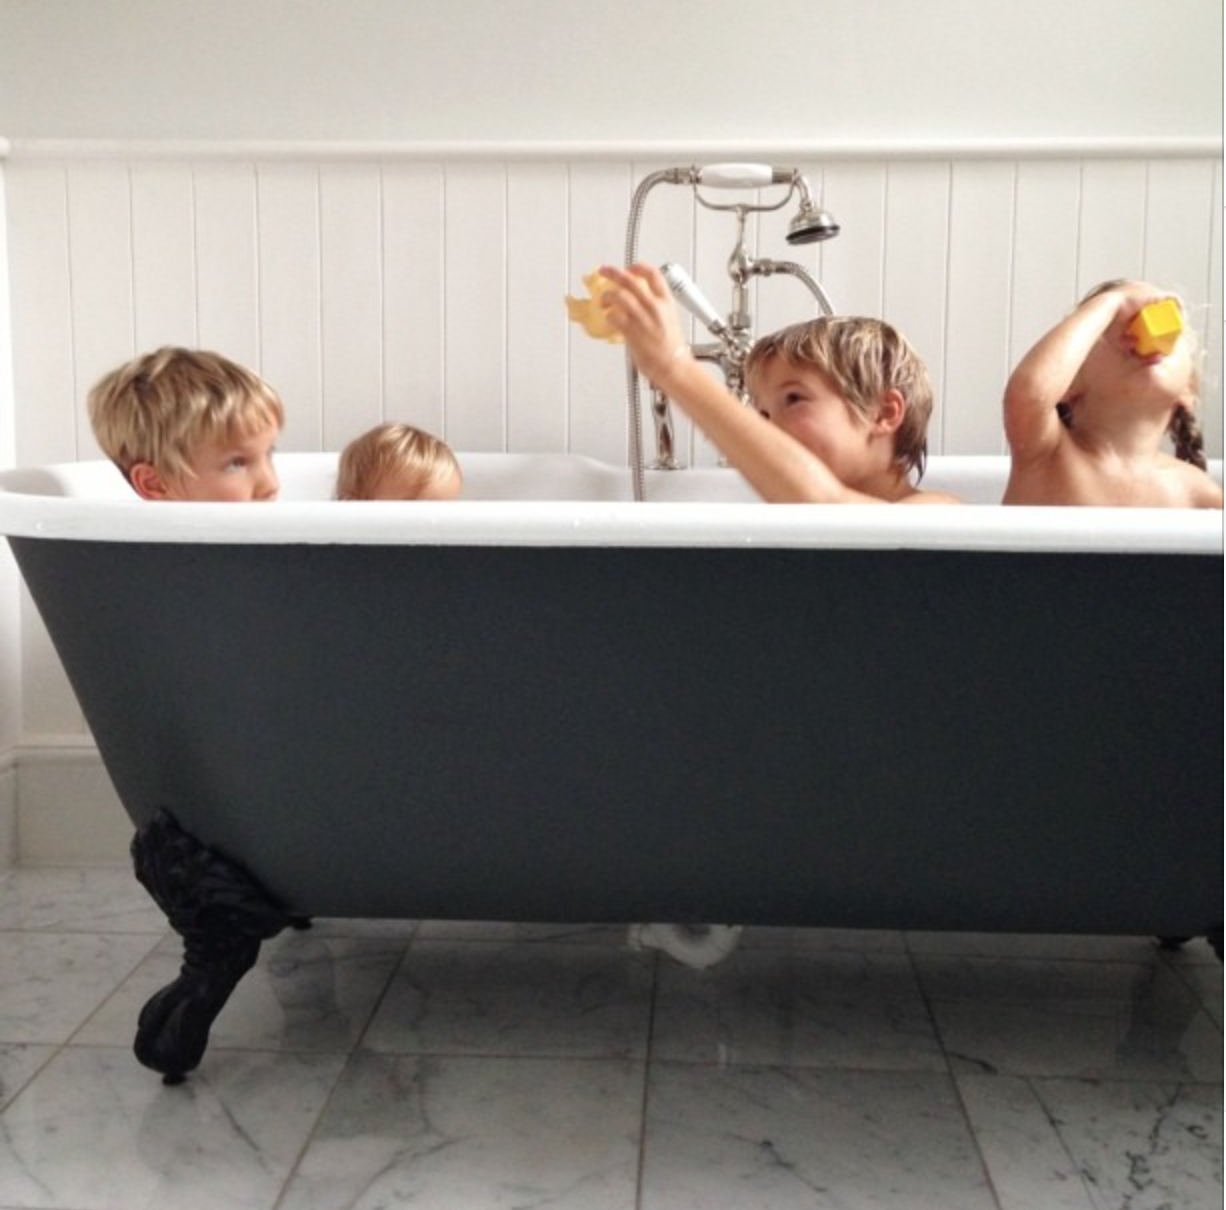 how often do you bathe your kids